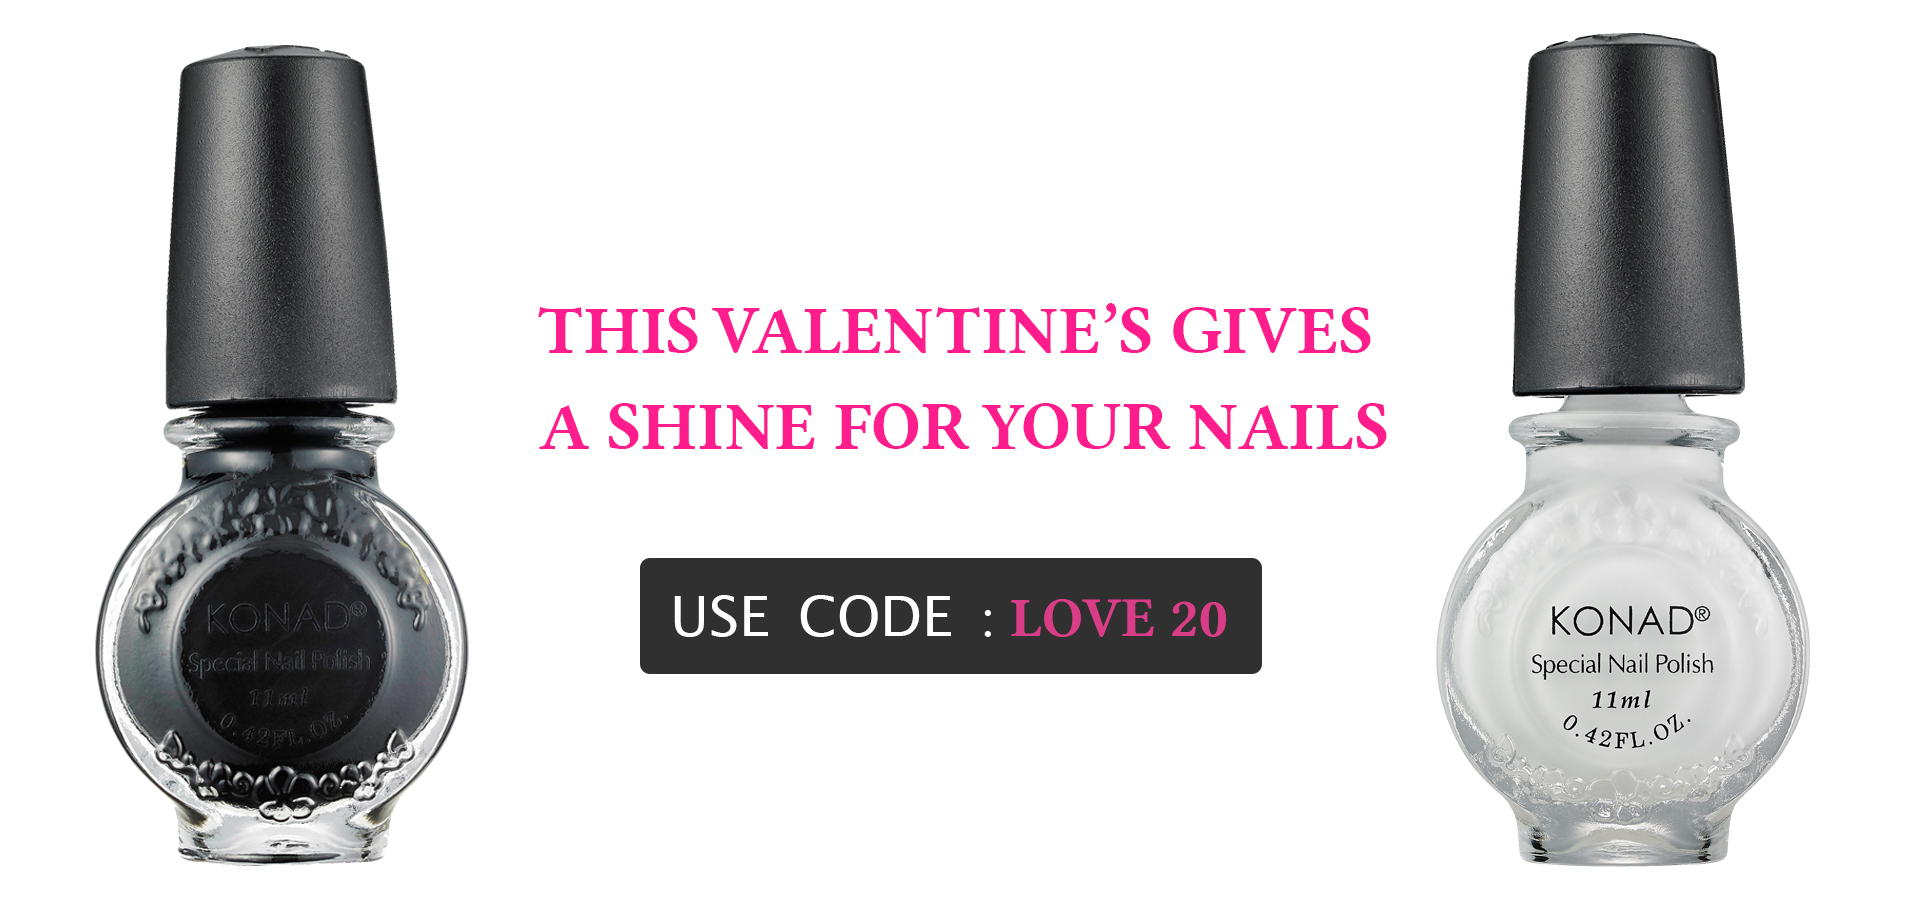 Valentine gift for your nails